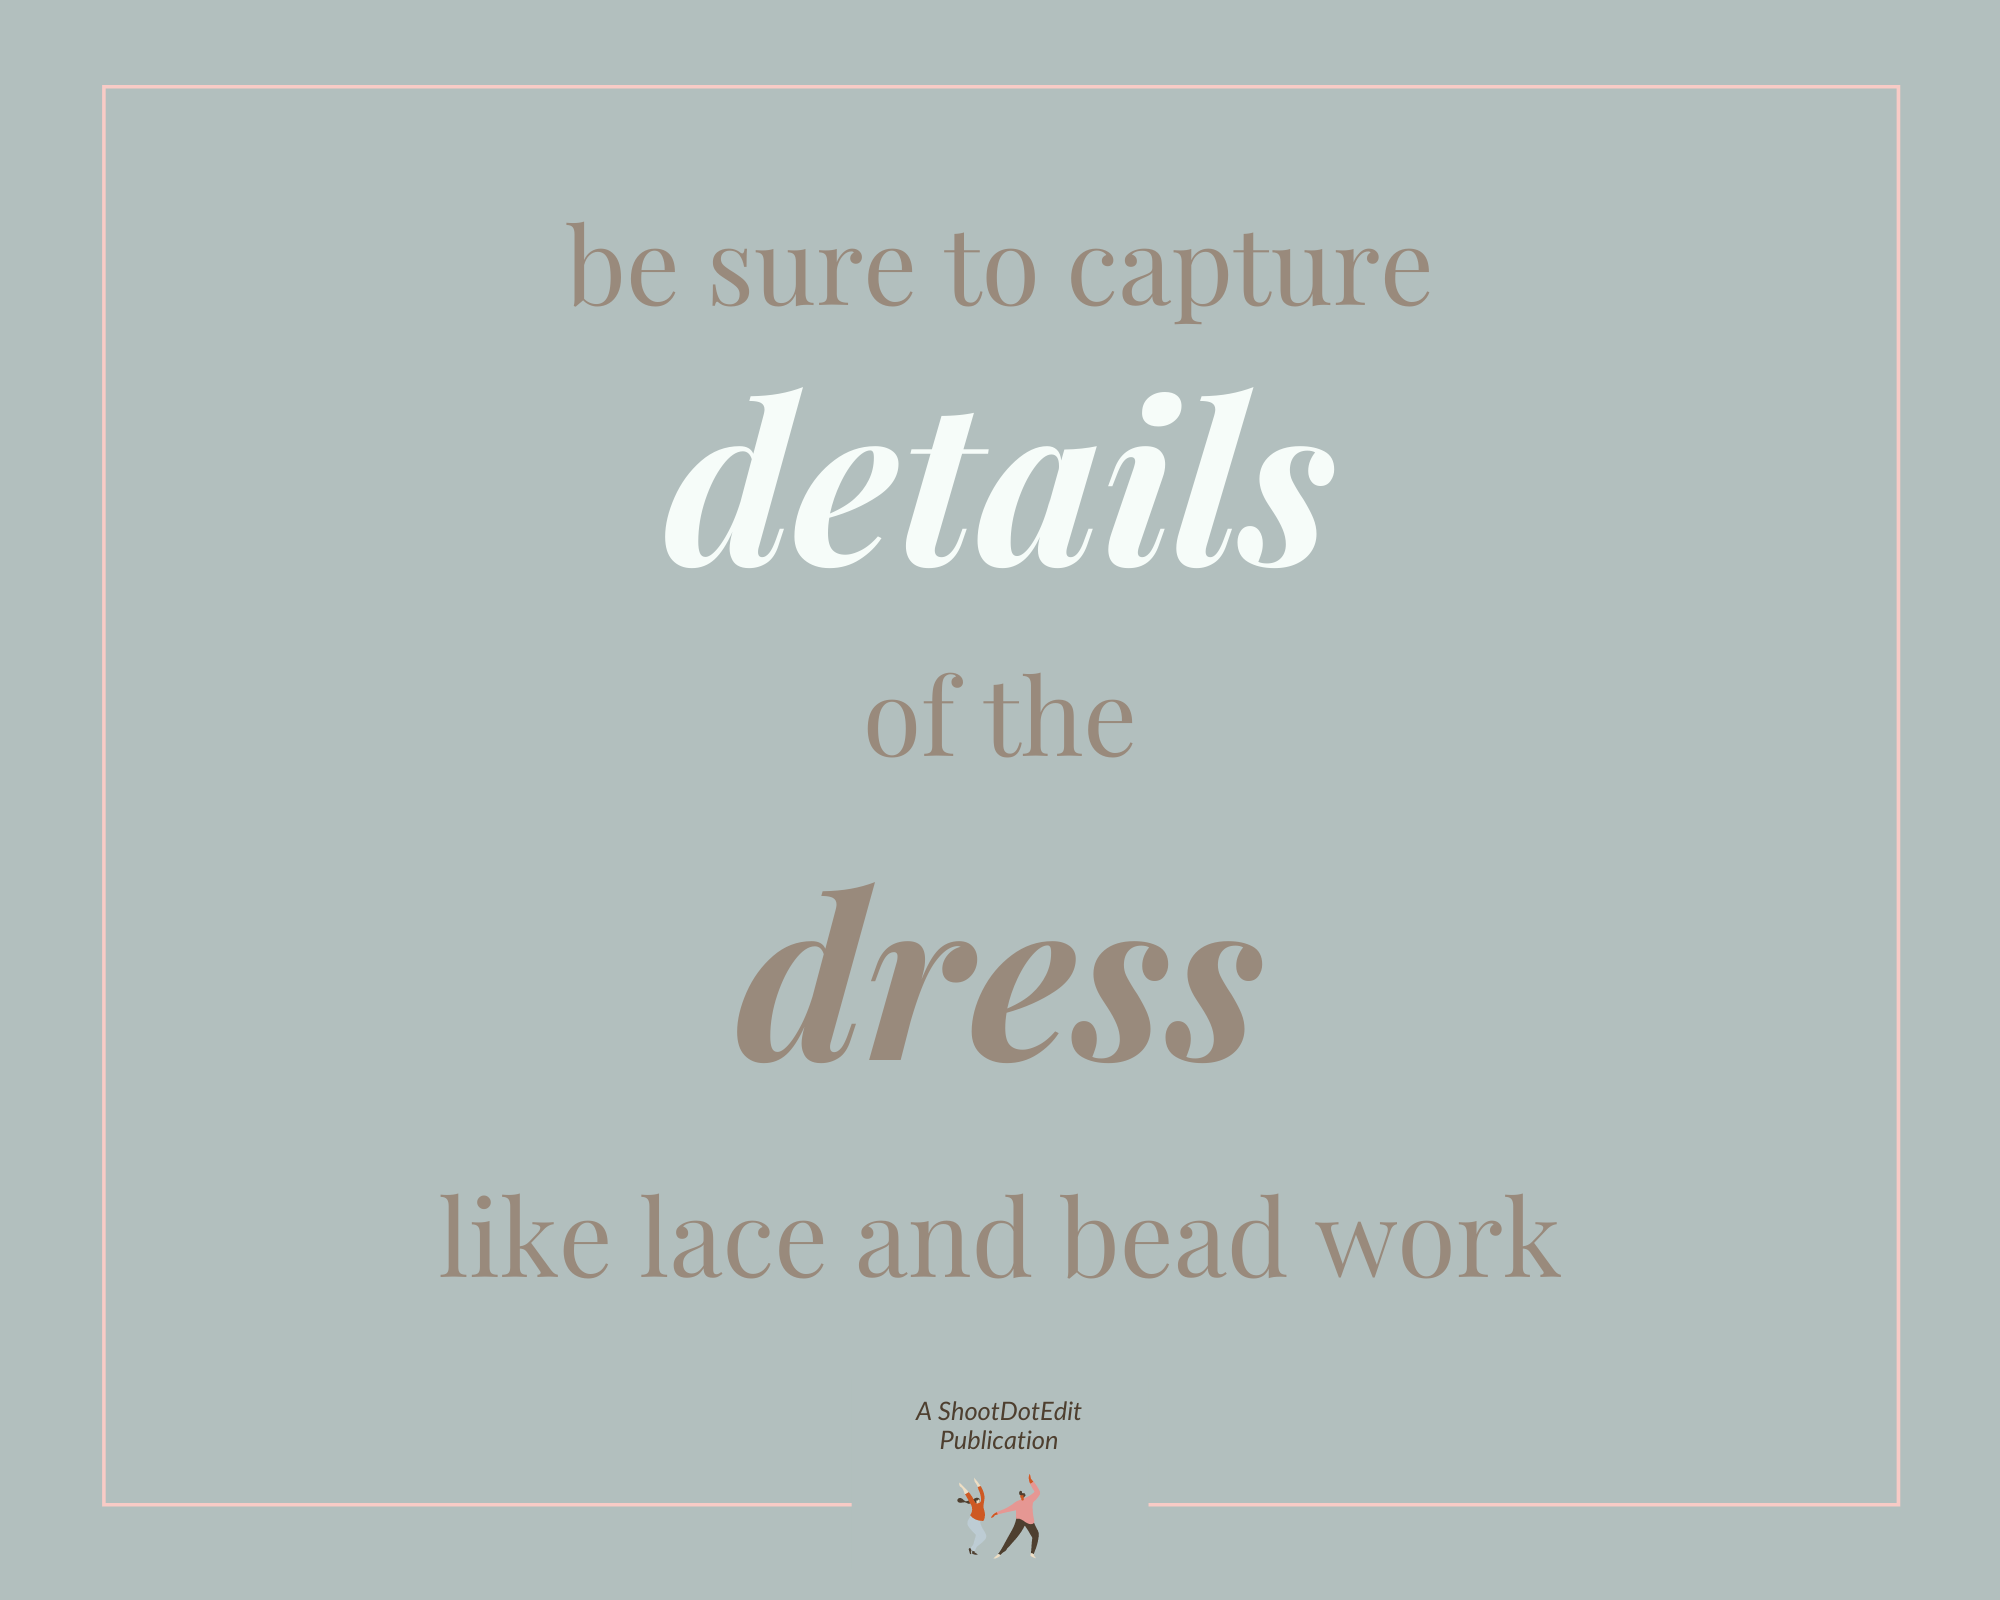 Infographic stating be sure to capture details of the dress like lace and bead work